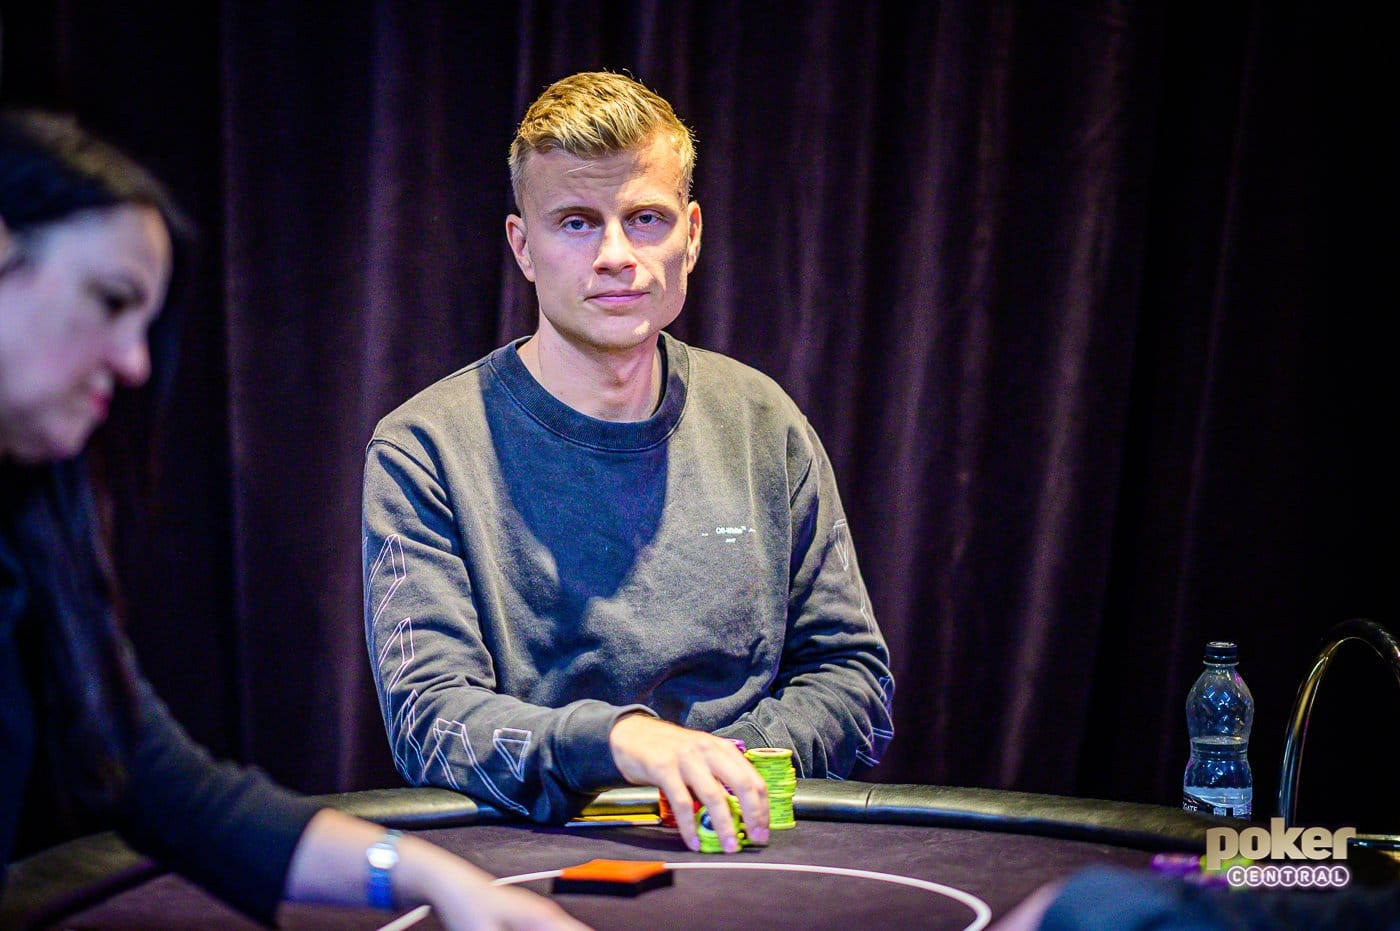 Poker Masters Online PLO Series: Kyllonen Wins Two Events, Parssinen Leads